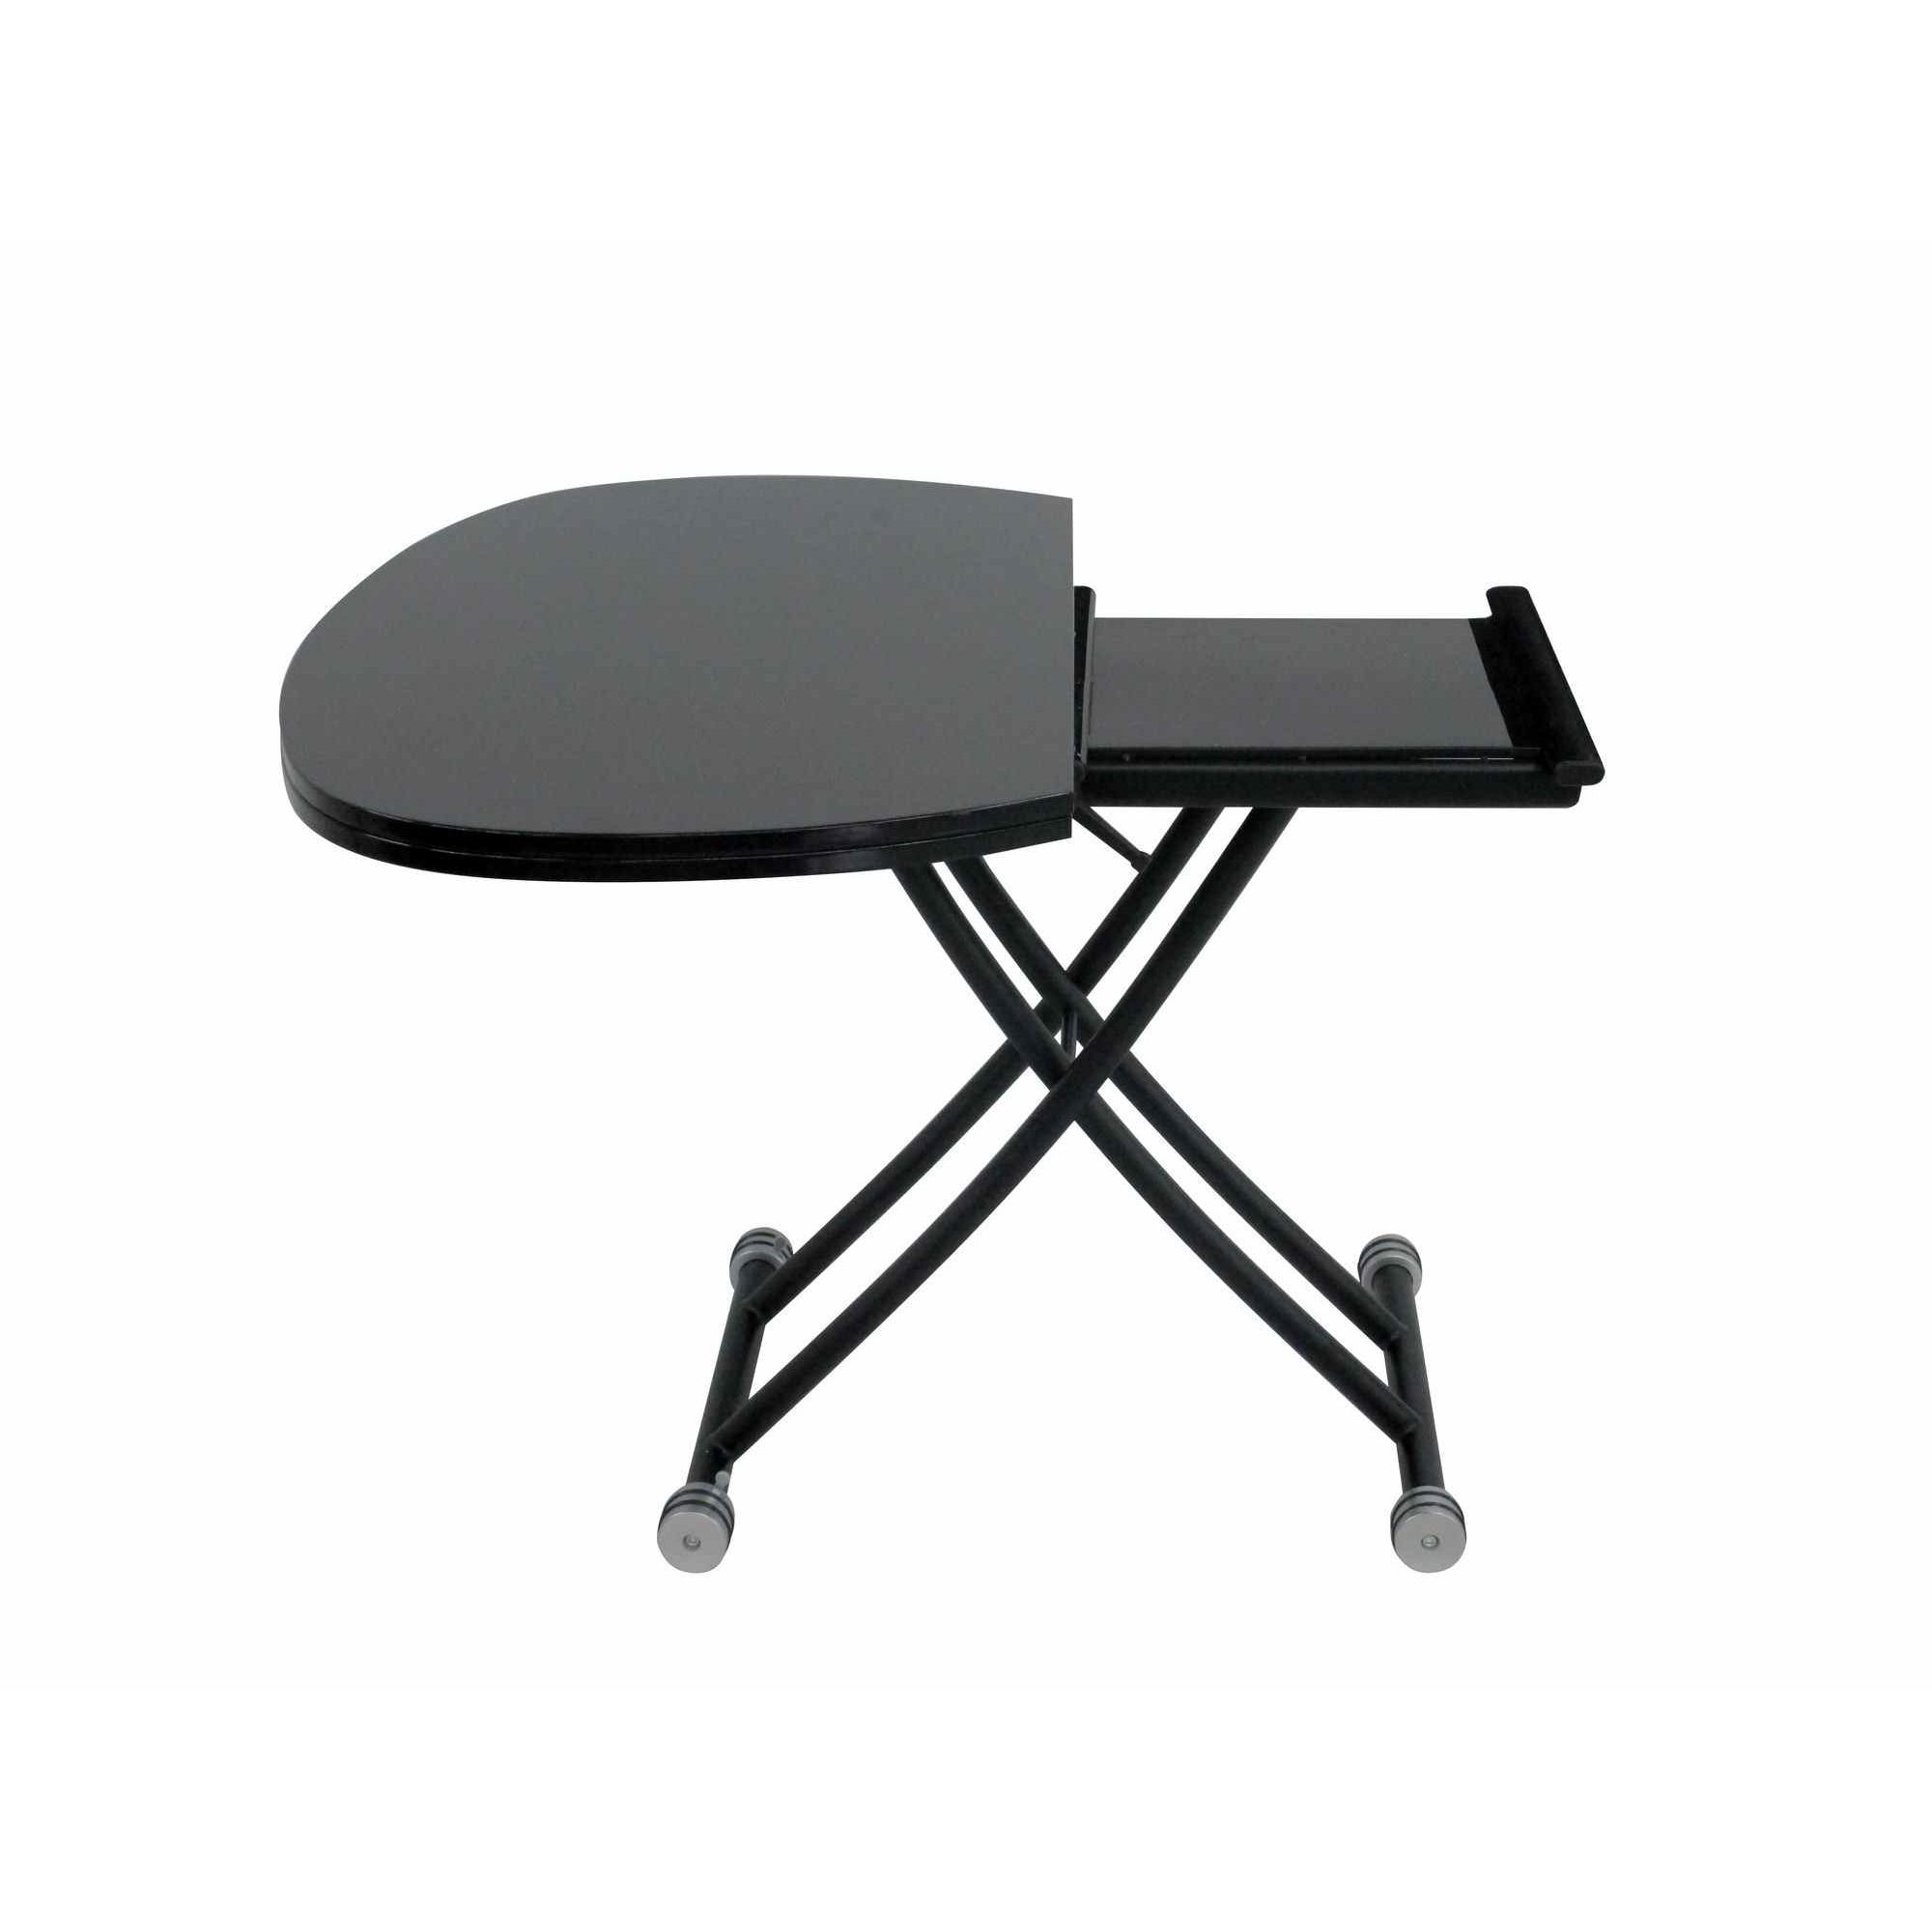 Deco in paris table basse relevable a rallonge laquee for Table basse relevable noir